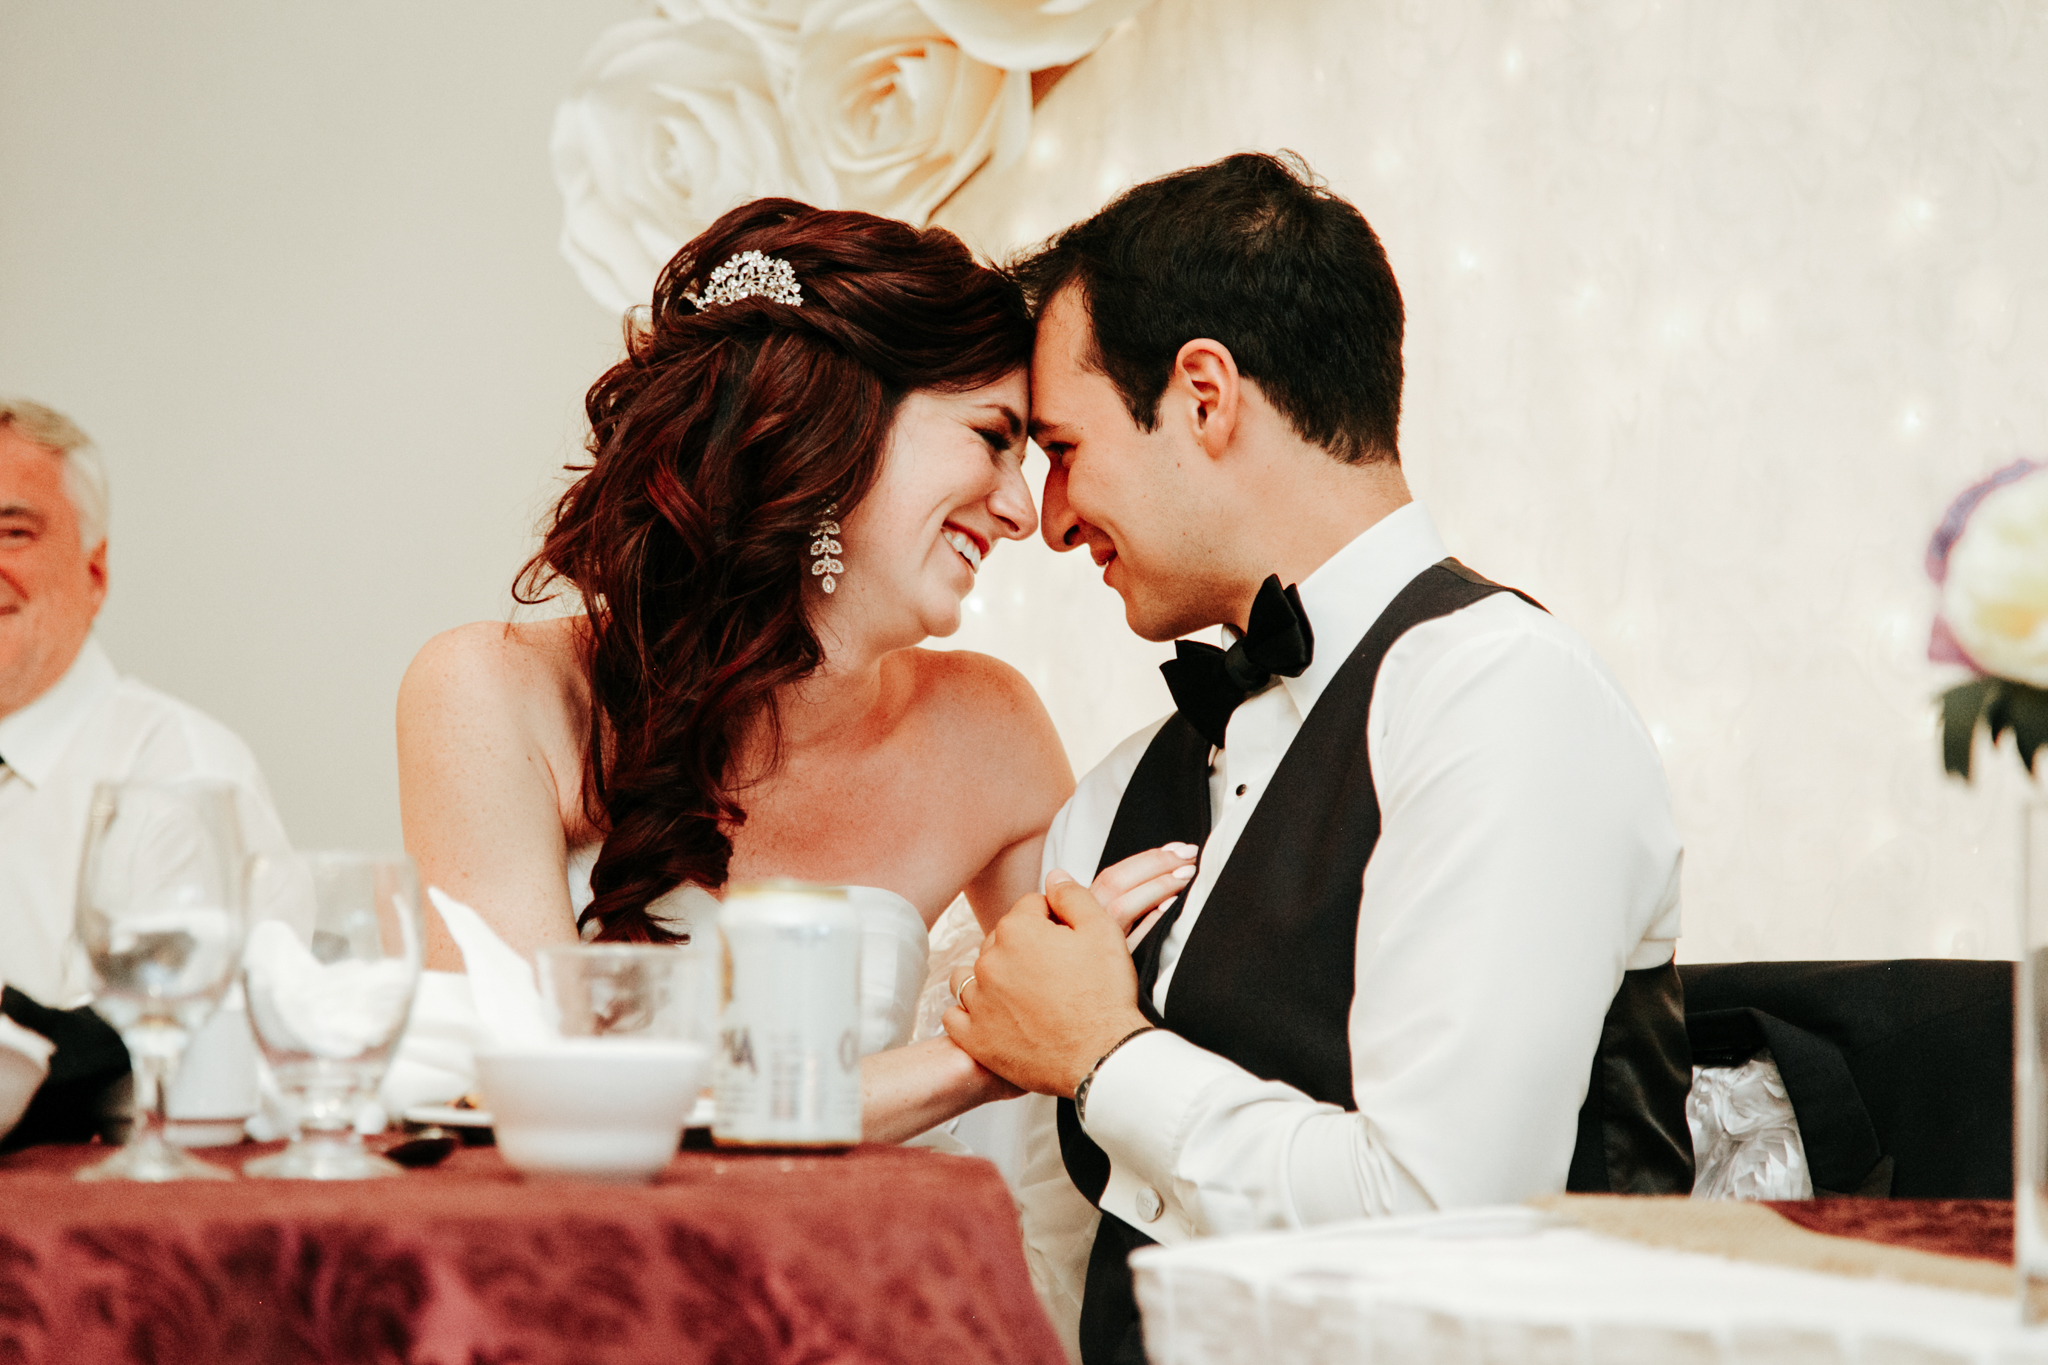 waterton-wedding-photography-love-and-be-loved-photographer-bayshore-inn-reception-image-photo-picture-28.jpg